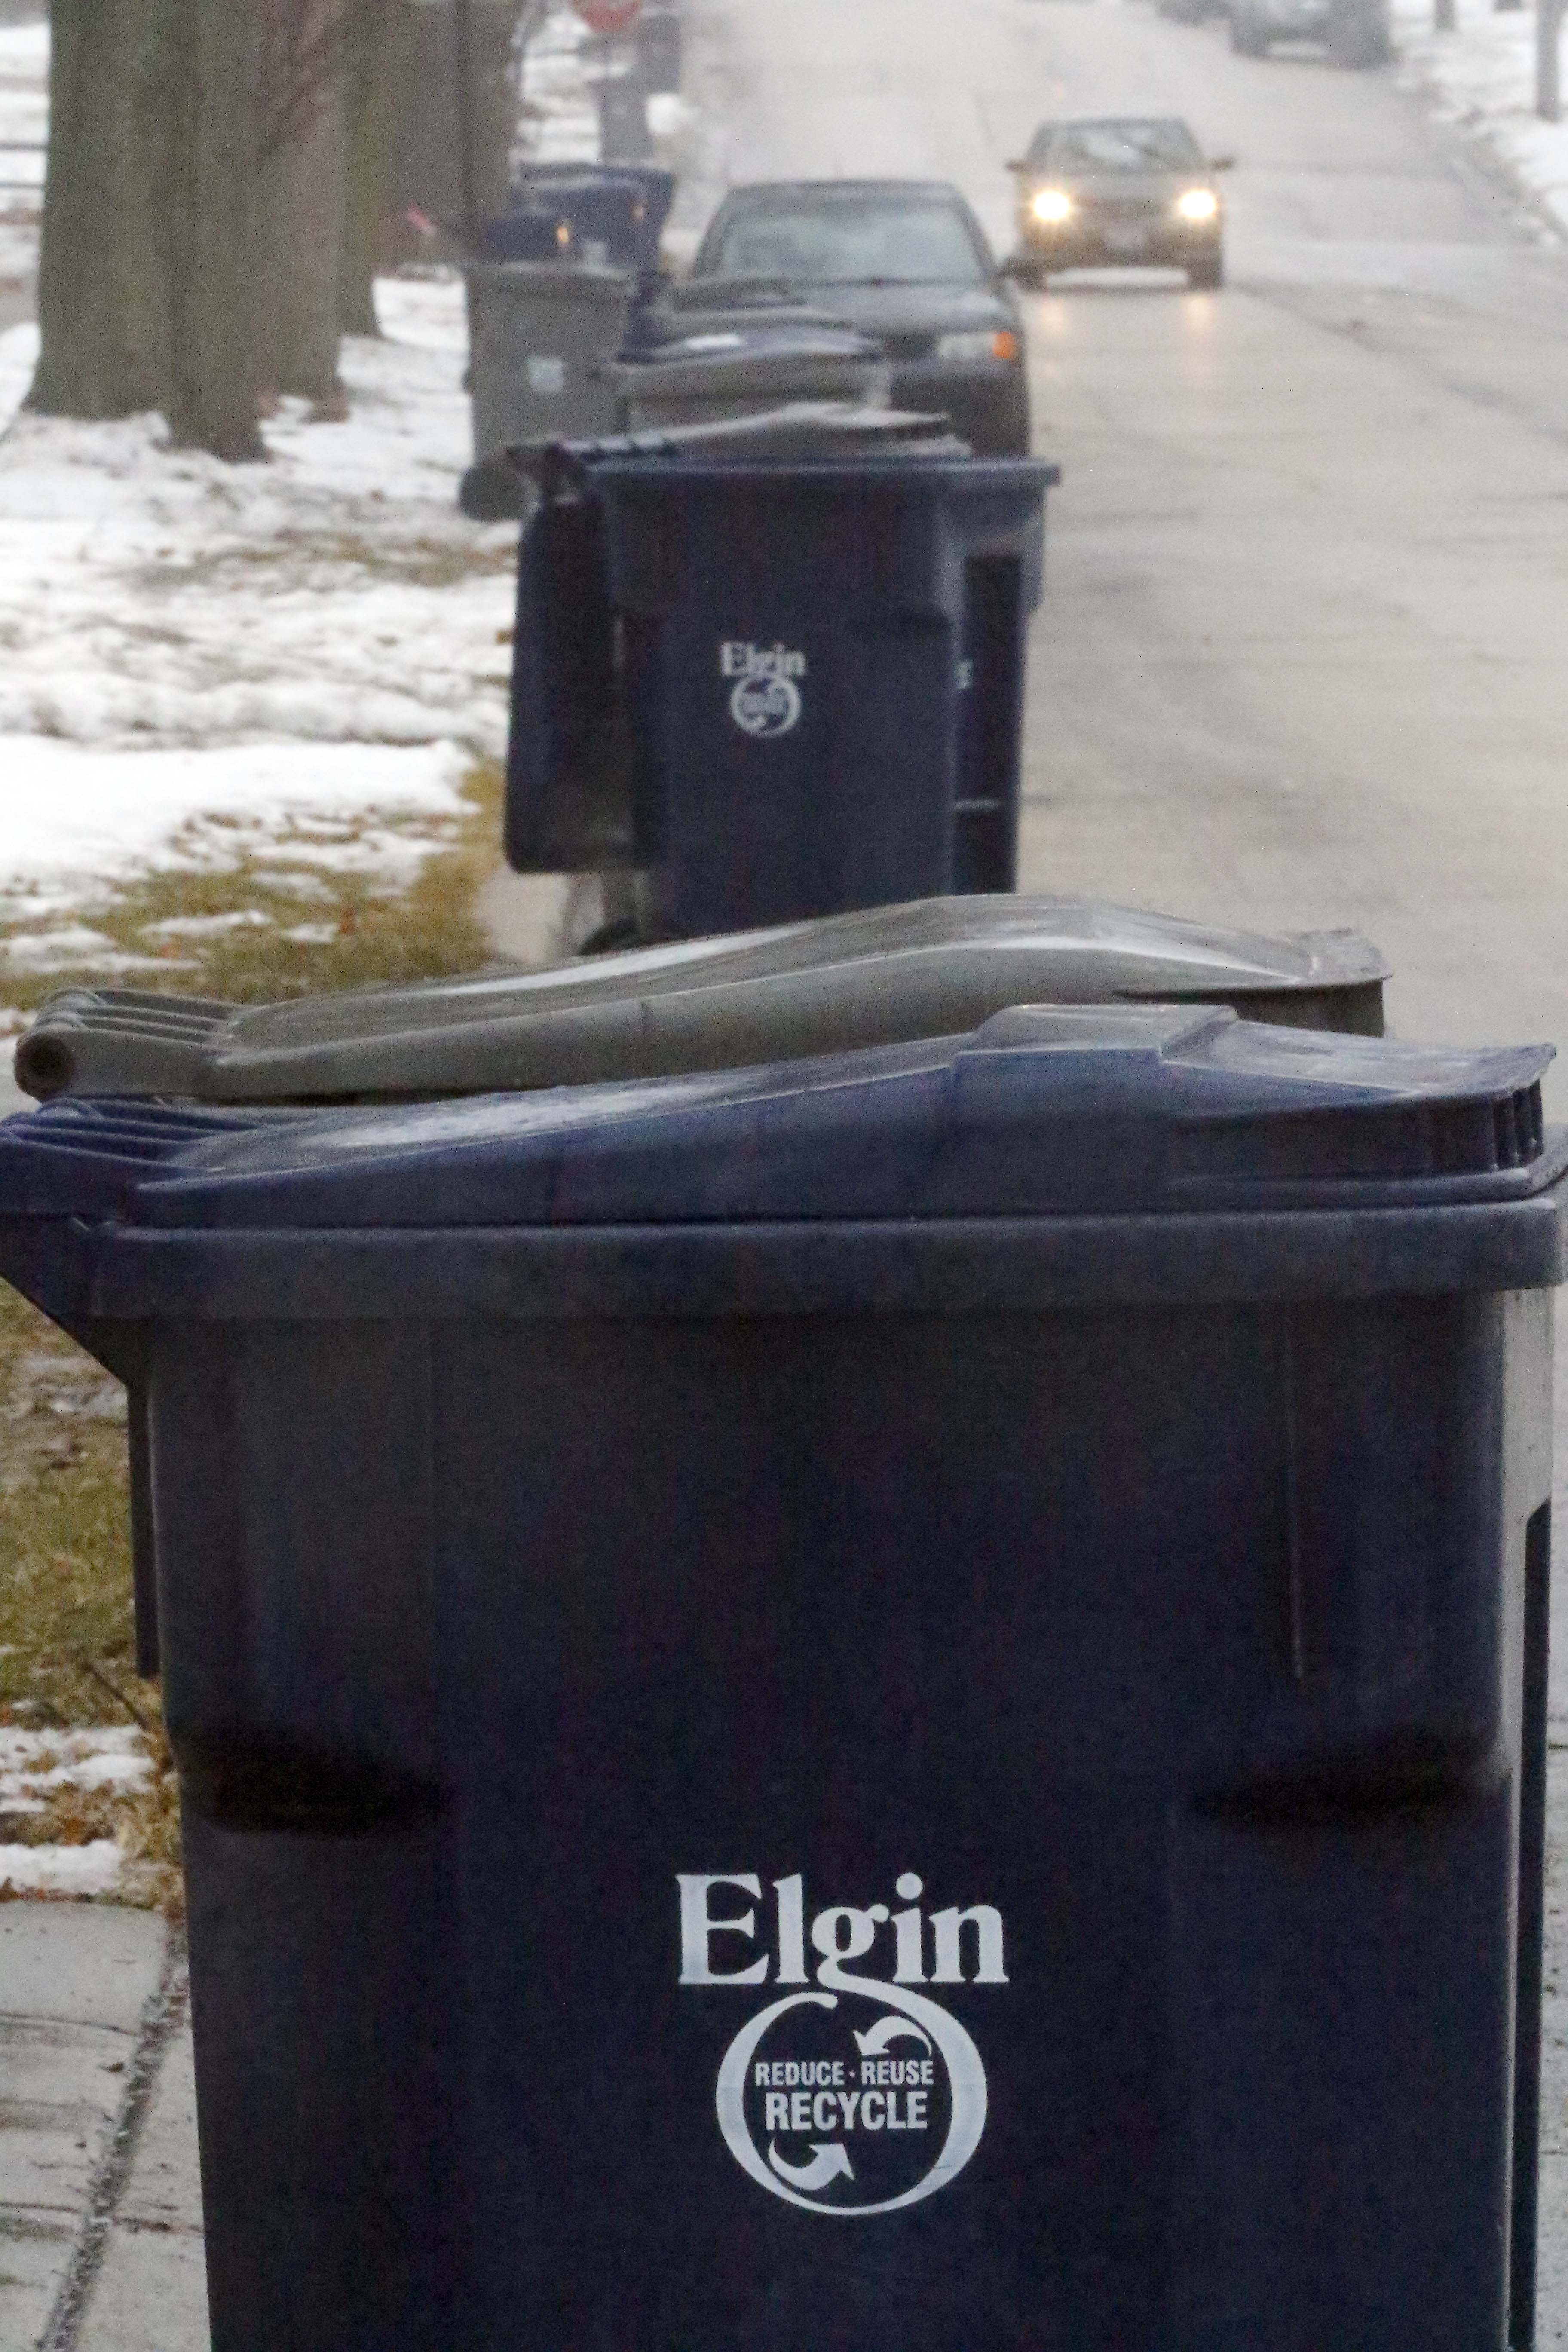 Kane County is simplifying instructions on how to properly recycle, to avoid messing up the stream of recyclables. Typical contaminants are plastic bags, frozen food boxes and greasy/food-crusted pizza boxes.